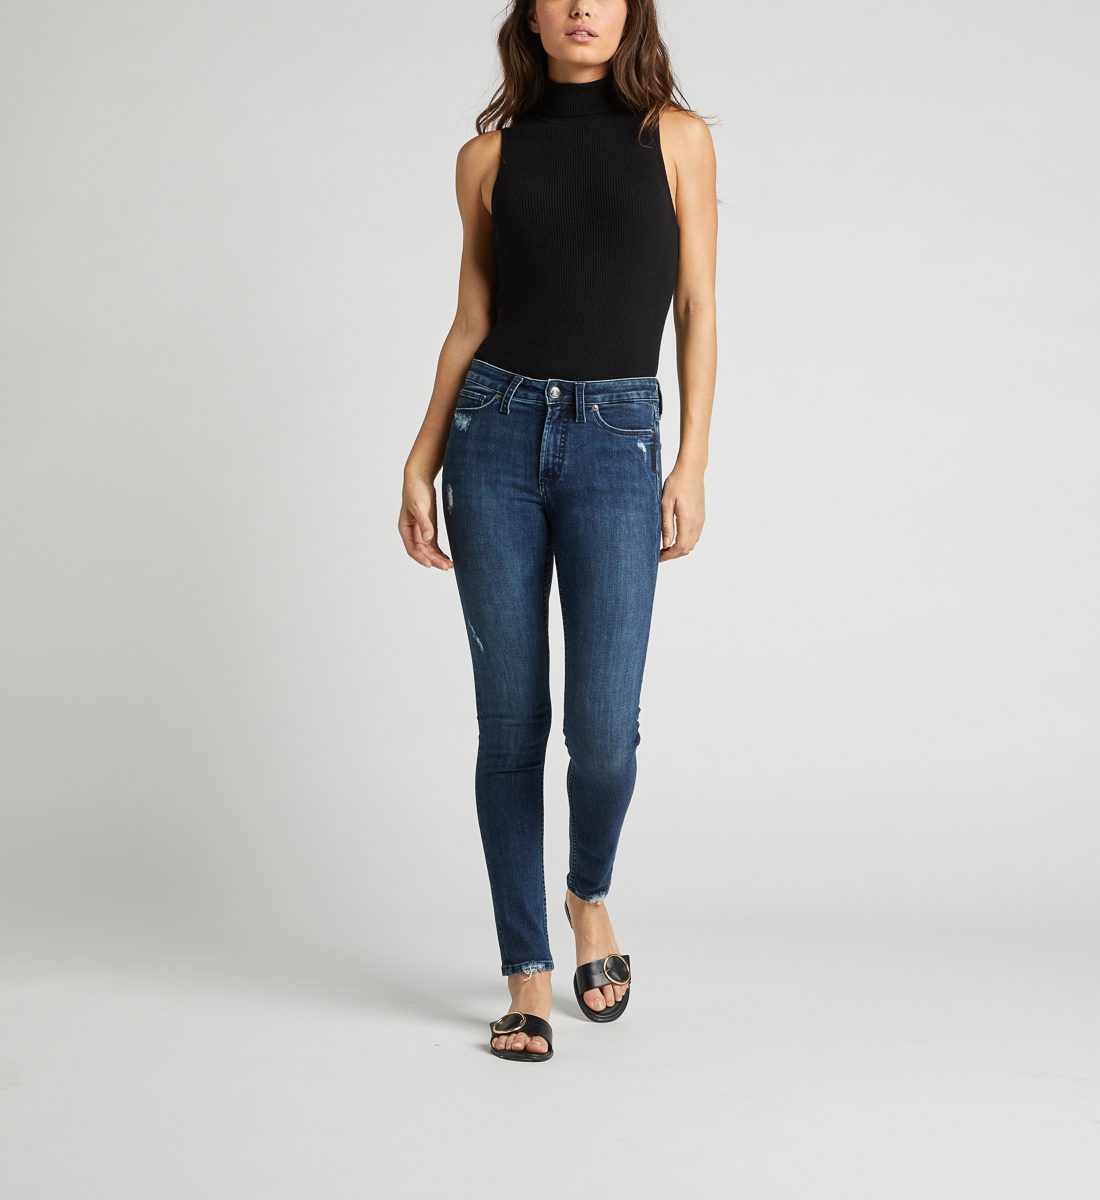 Most Wanted Mid Rise Skinny Leg Jeans Alt Image 1